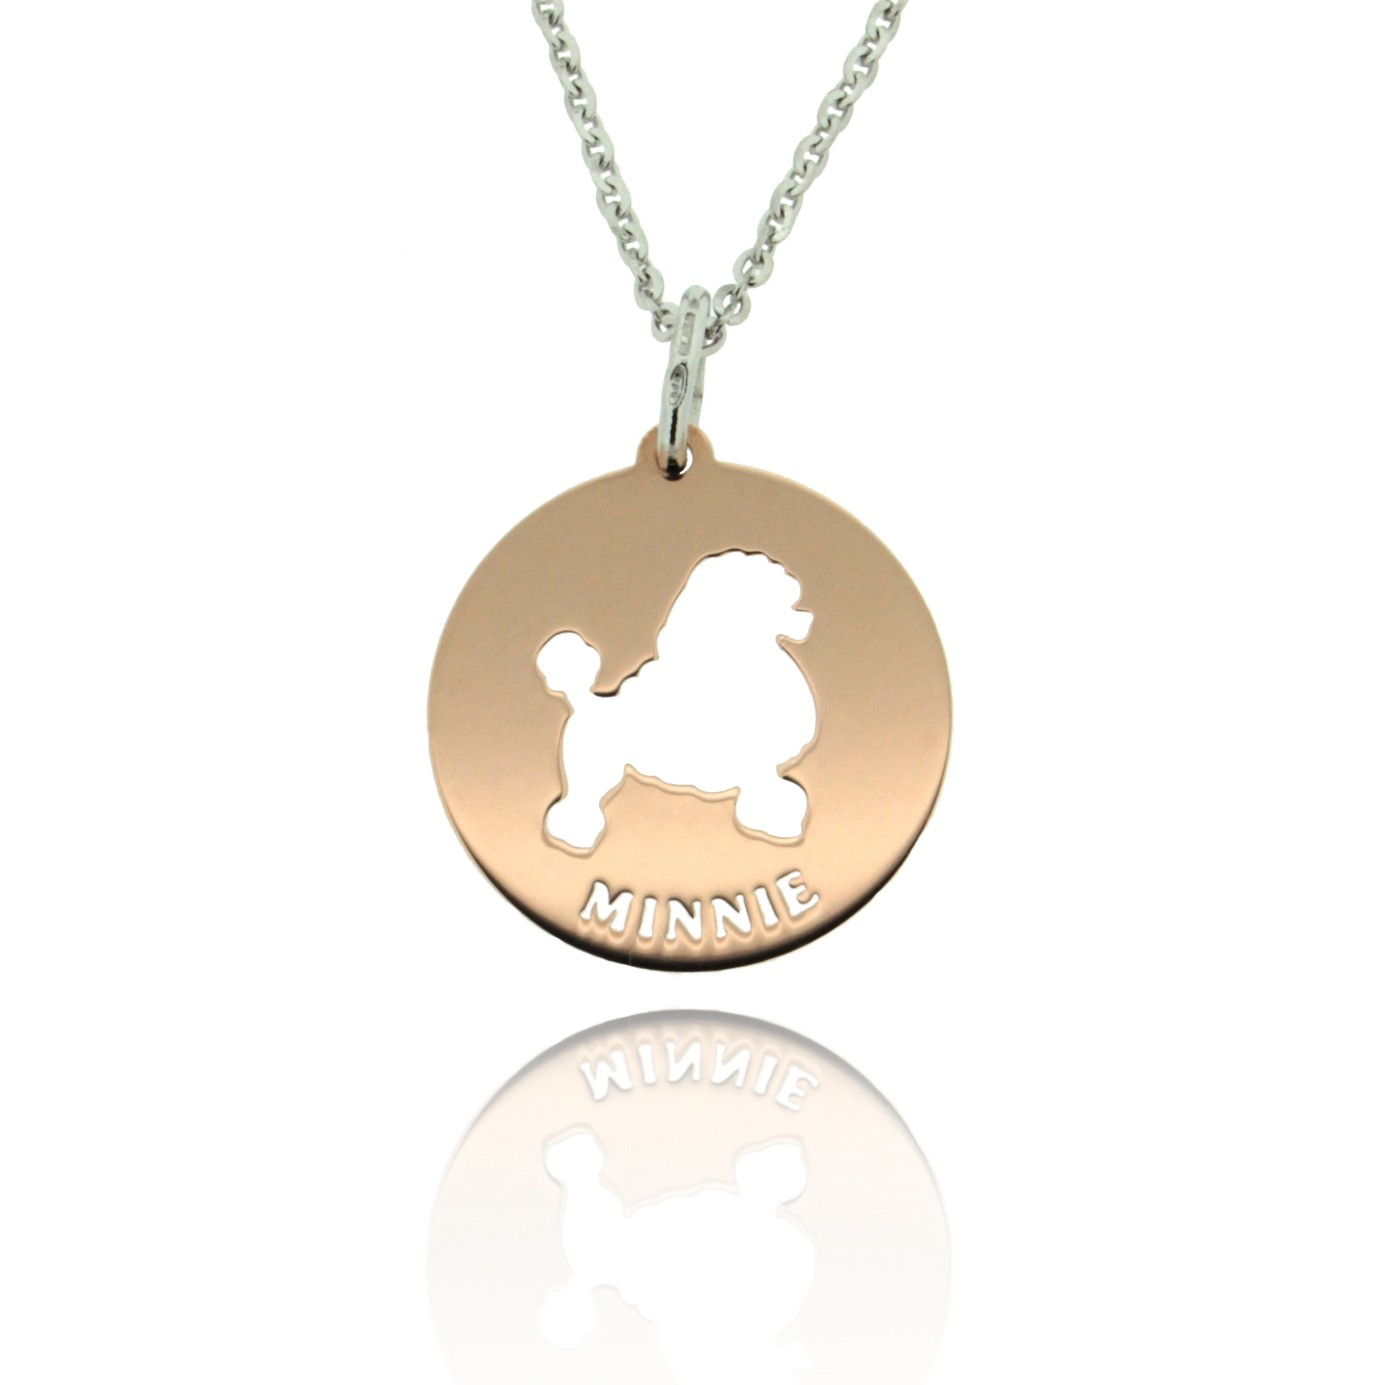 My Lovely Dog - collana personalizzabile